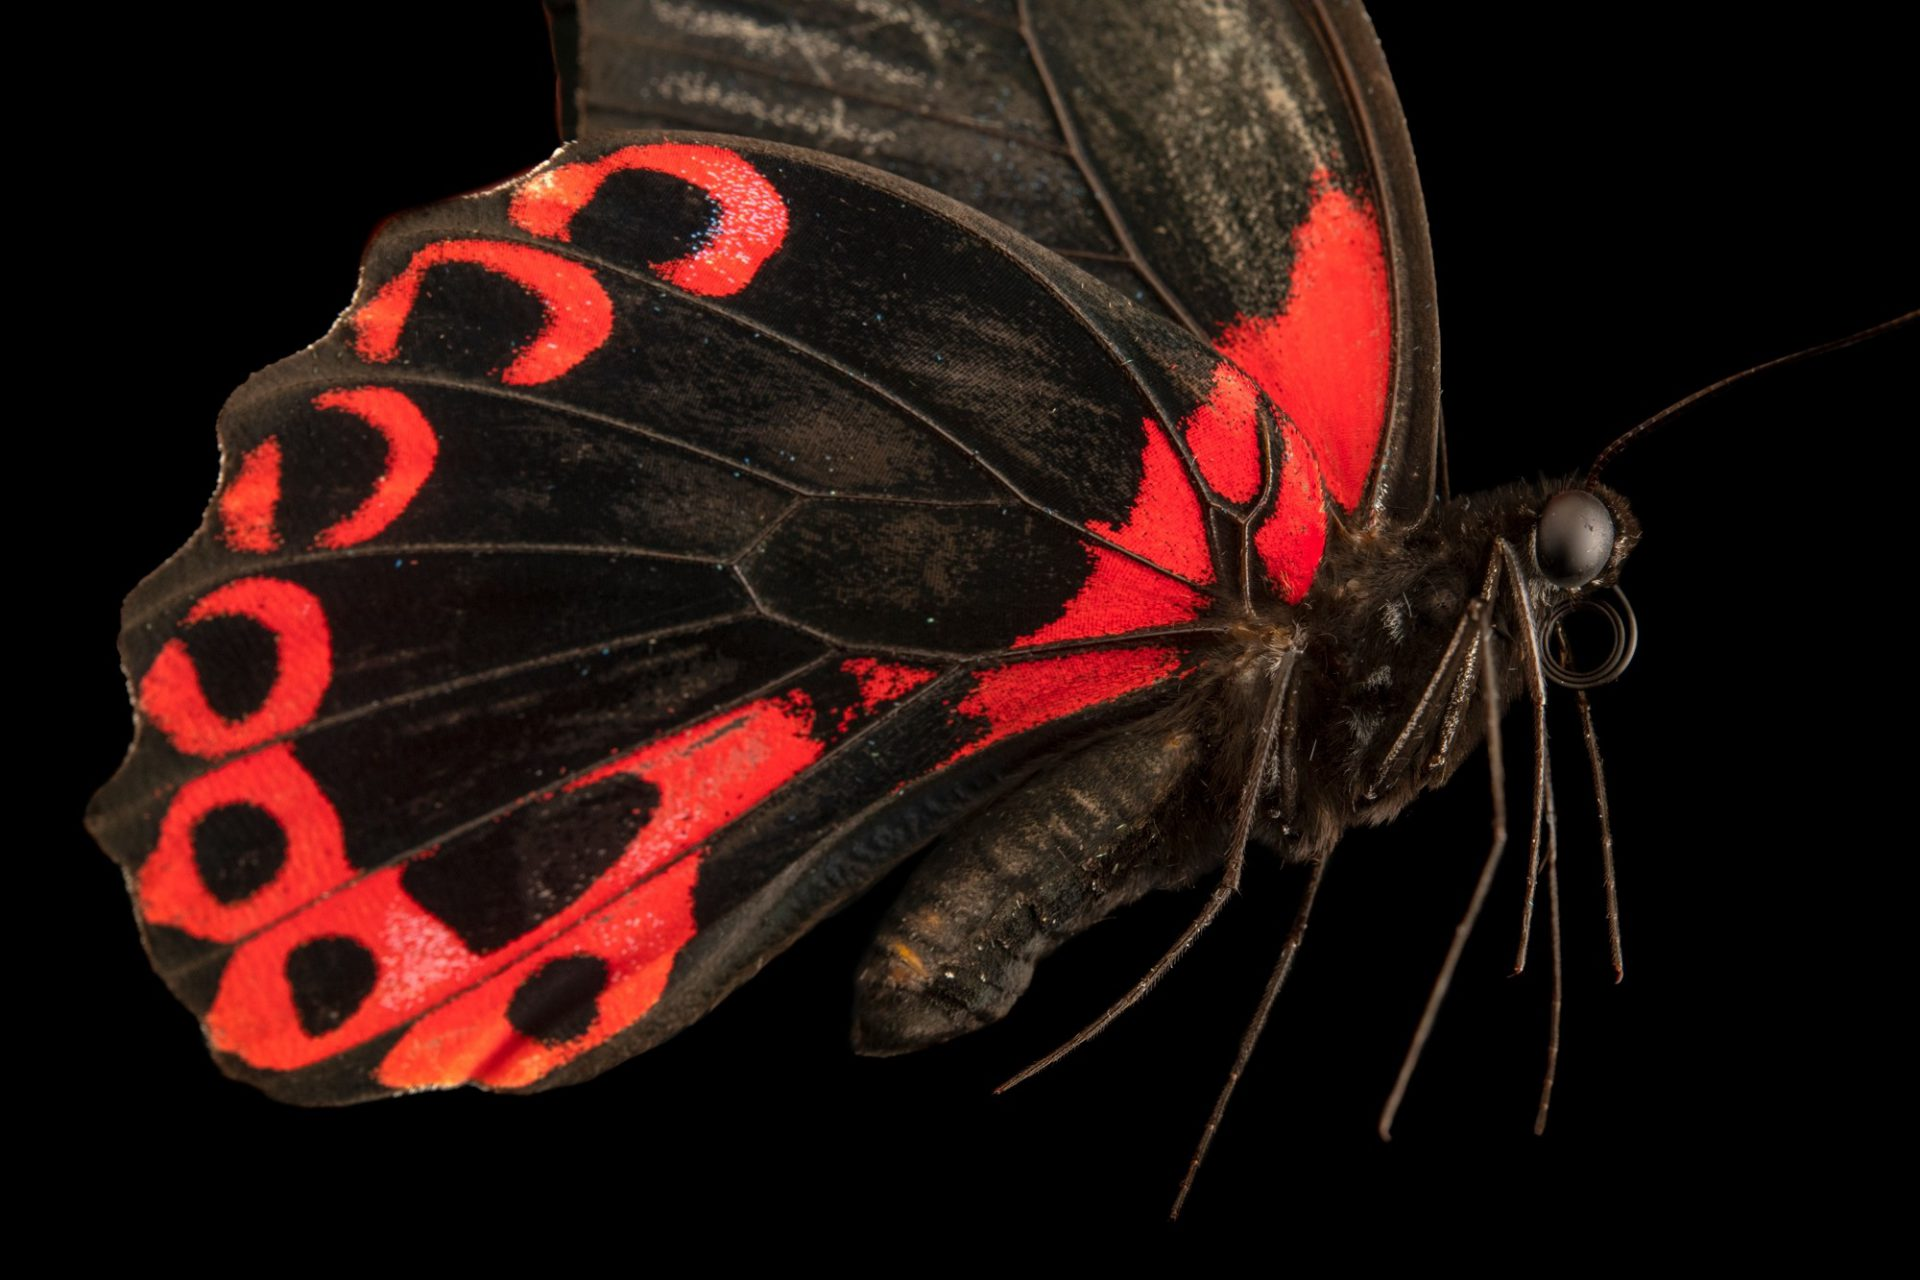 Photo: Scarlet mormon (Papilio deiphobus rumanzovia) at the Jumalon Butterfly Sanctuary on Cebu Island in the Philippines.